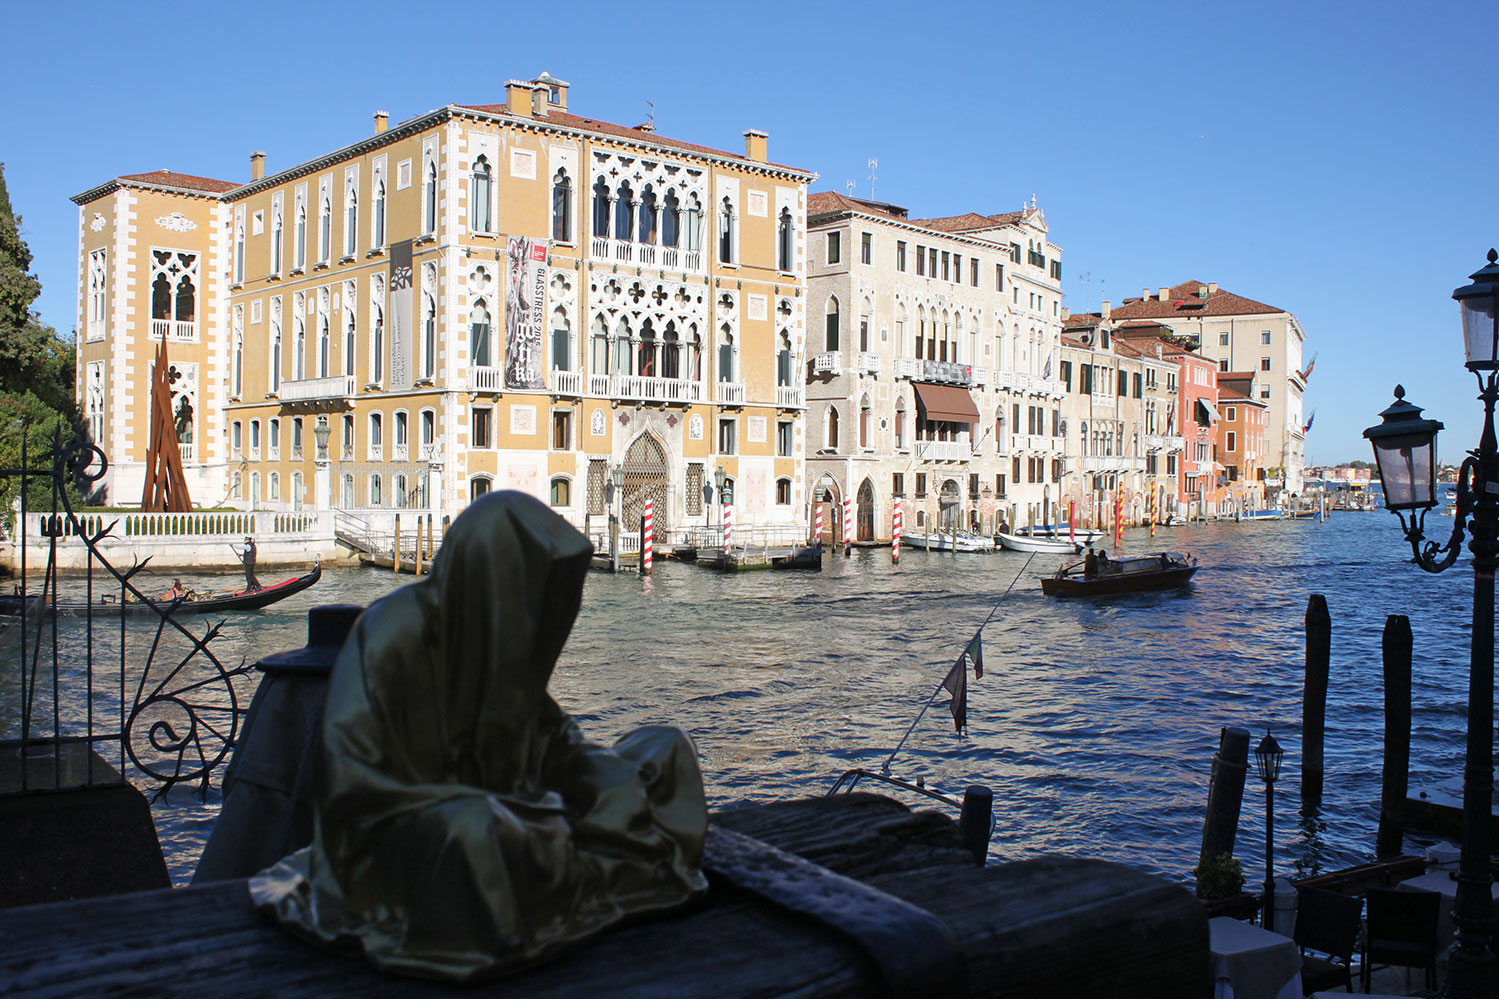 european-cultural-centre-venice-biennale-contemporary-art-show-sculpture-fine-arts-public-statue-guardians-of-time-manfred-kili-kielnhofer-9899